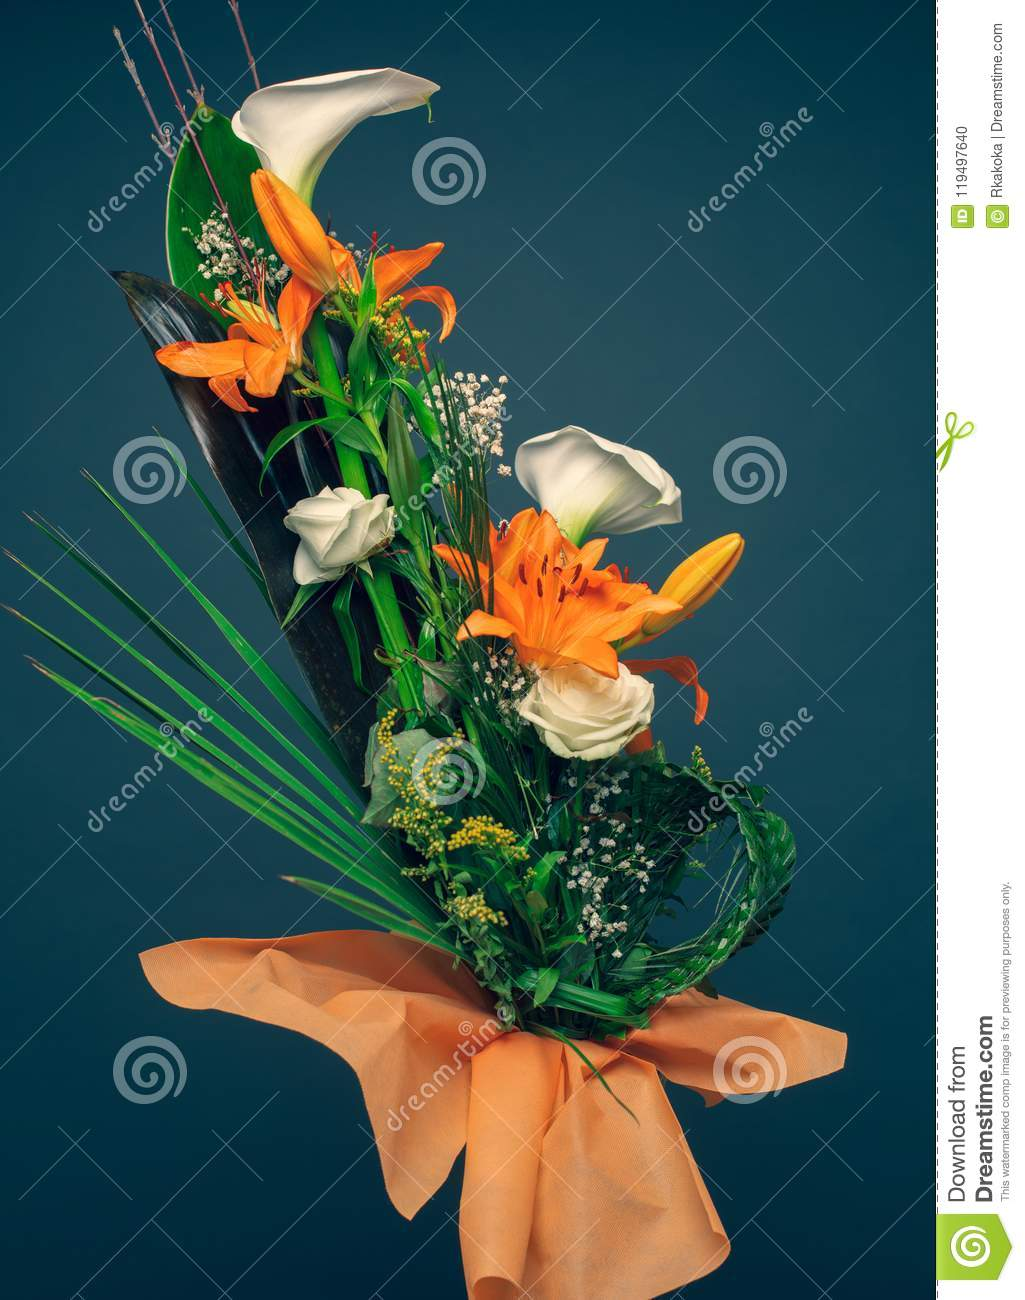 Orange lilies, white calla flowers and palm tree leaves bouquet vertical color image studio shot. Mothers day concept background,